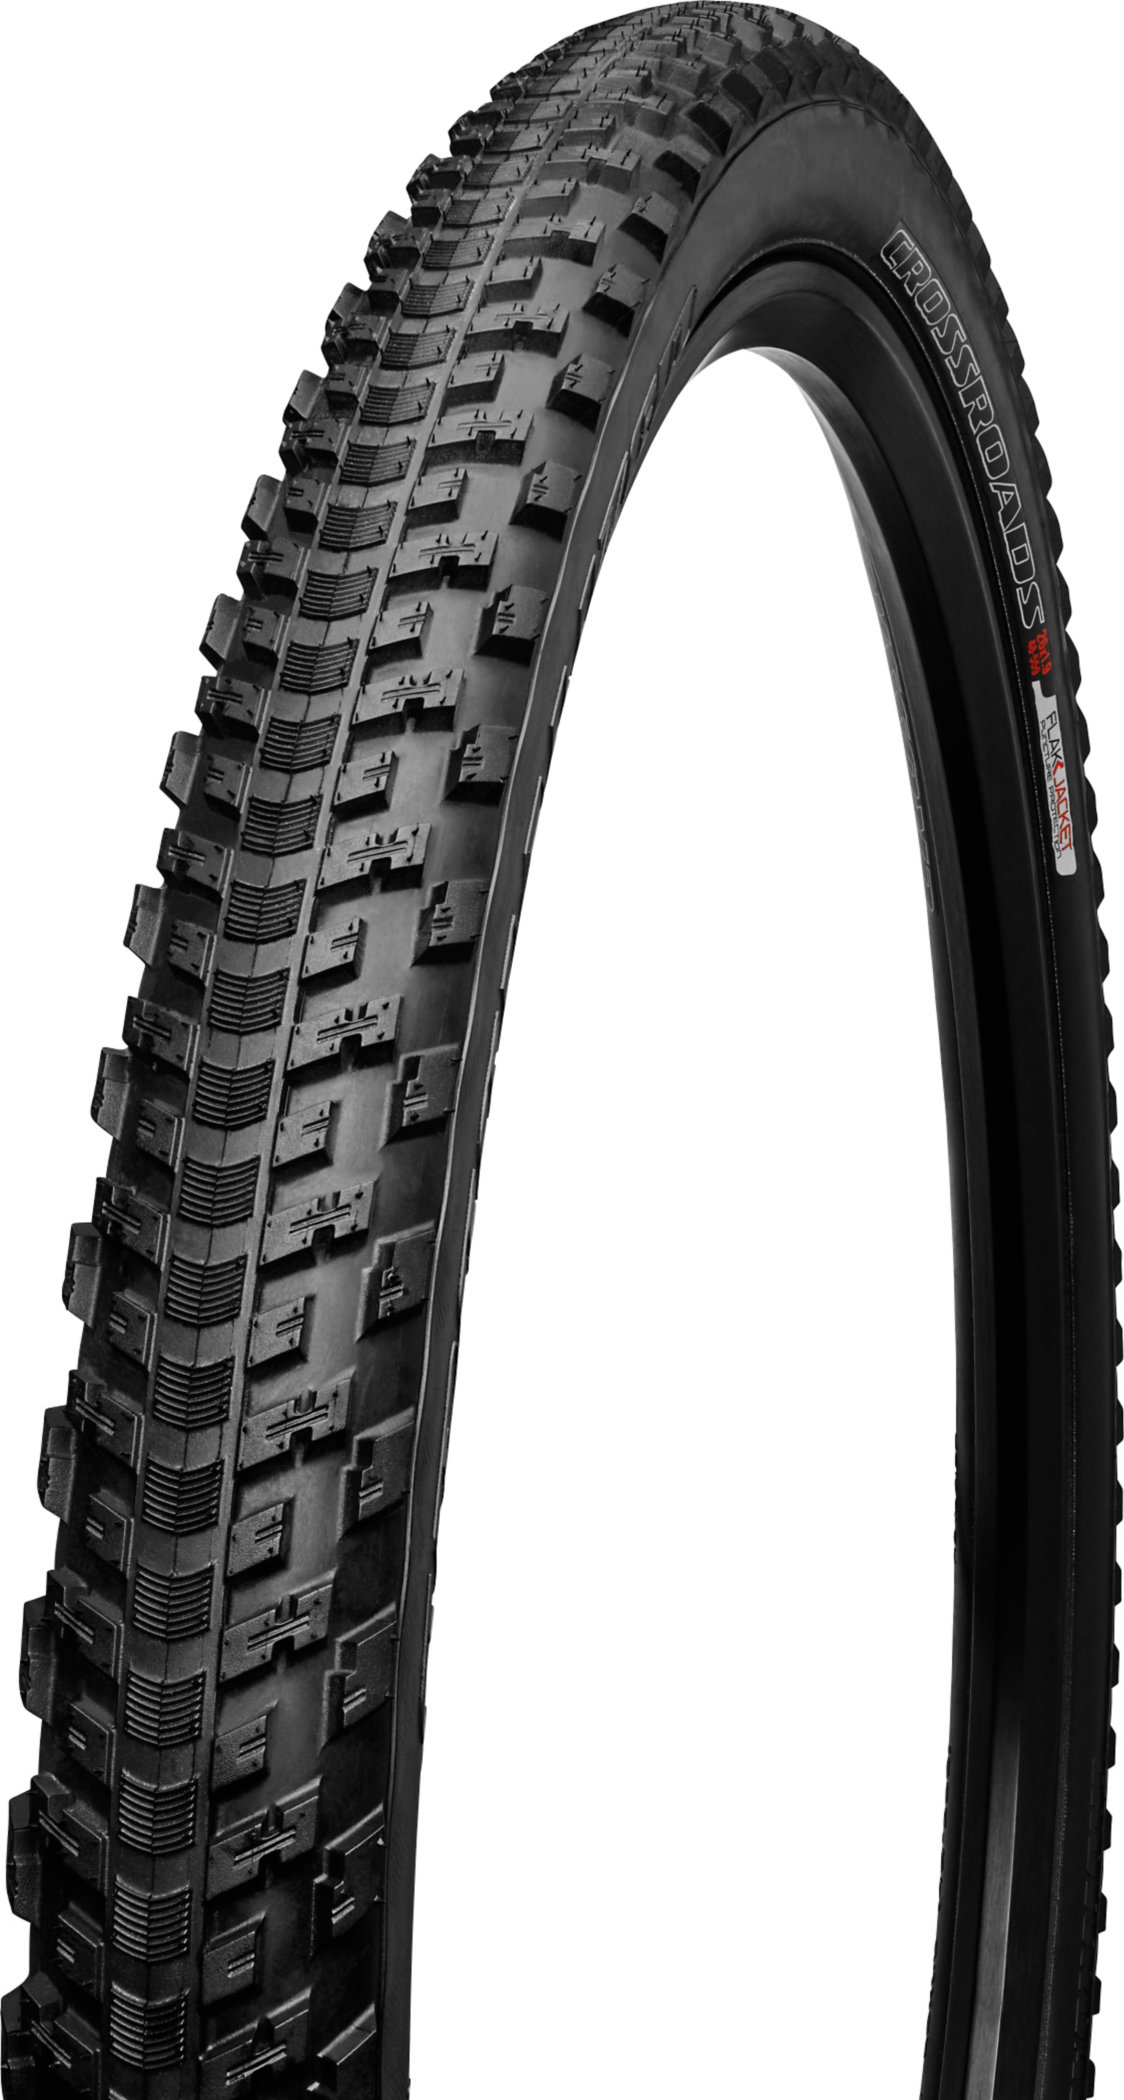 SPECIALIZED CROSSROADS TIRE 650BX1.9 - SPECIALIZED CROSSROADS TIRE 650BX1.9